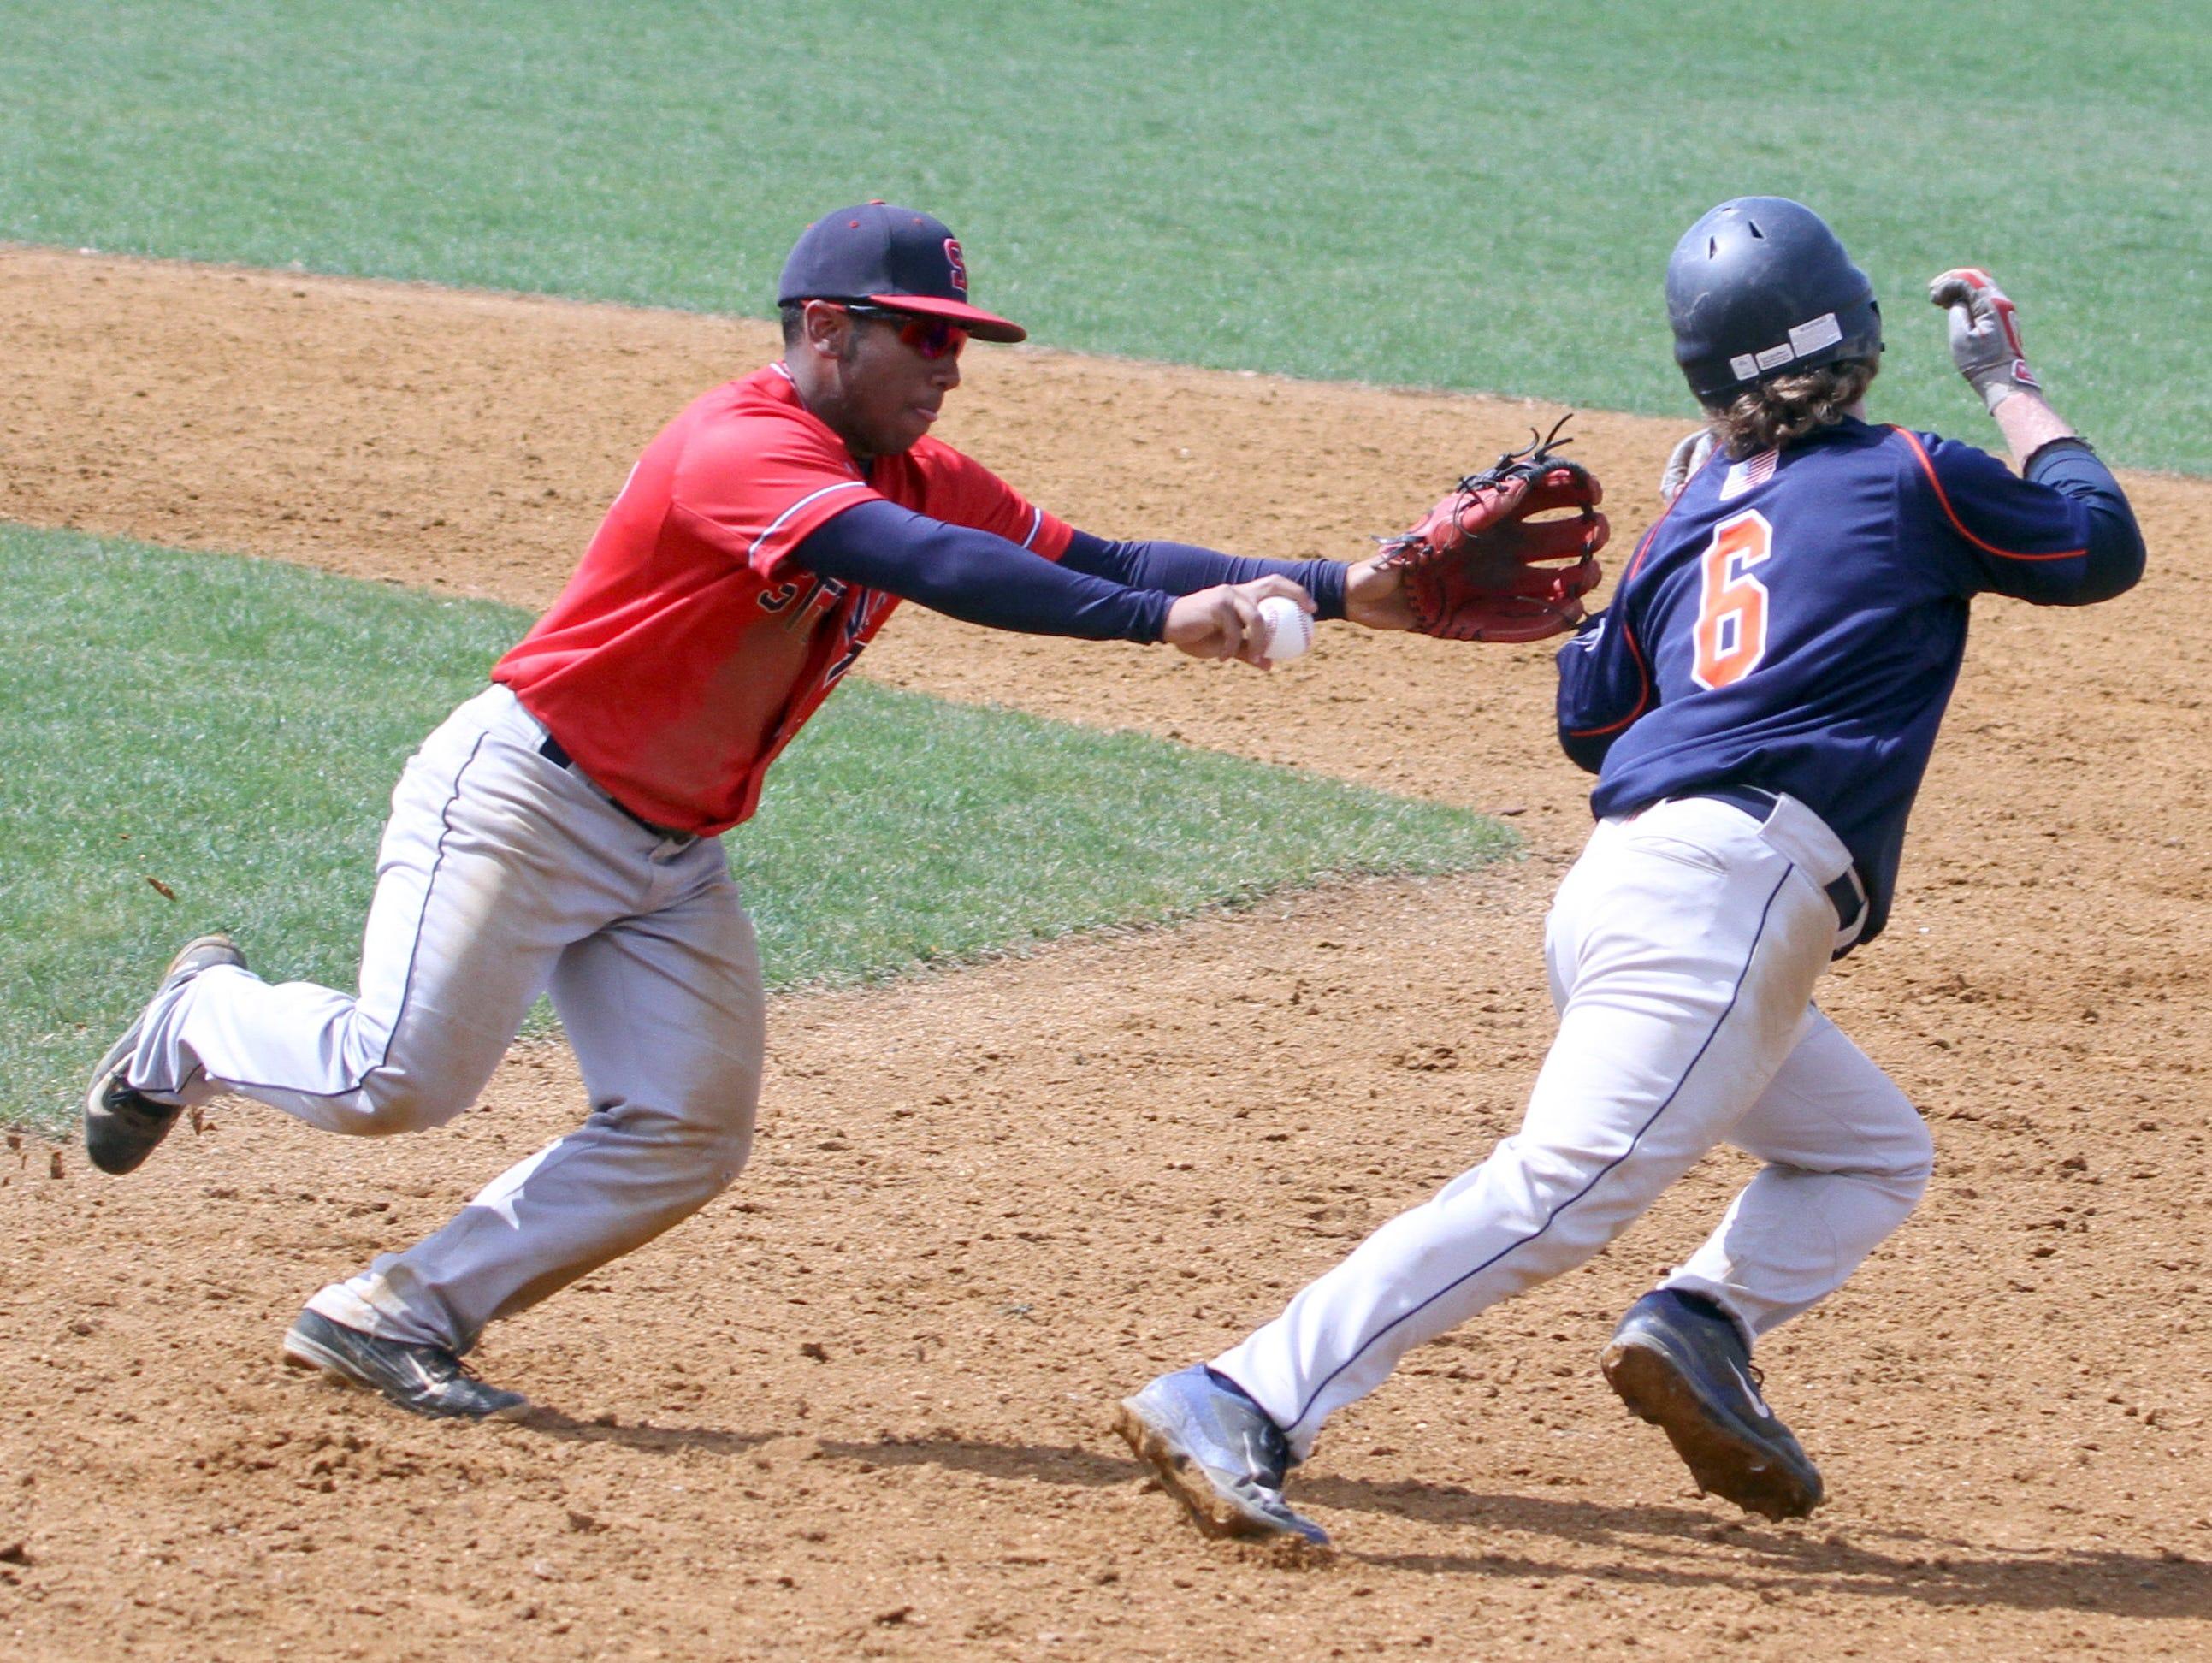 Satchel Schultz of Horace Greeley evades the tag of Stepinac second baseman Richie Wells during the championship game of the Pat Flaherty Memorial baseball tournament at Suffern High School April 2, 2016. Horace Greeley defeated Stepinac 12-0.